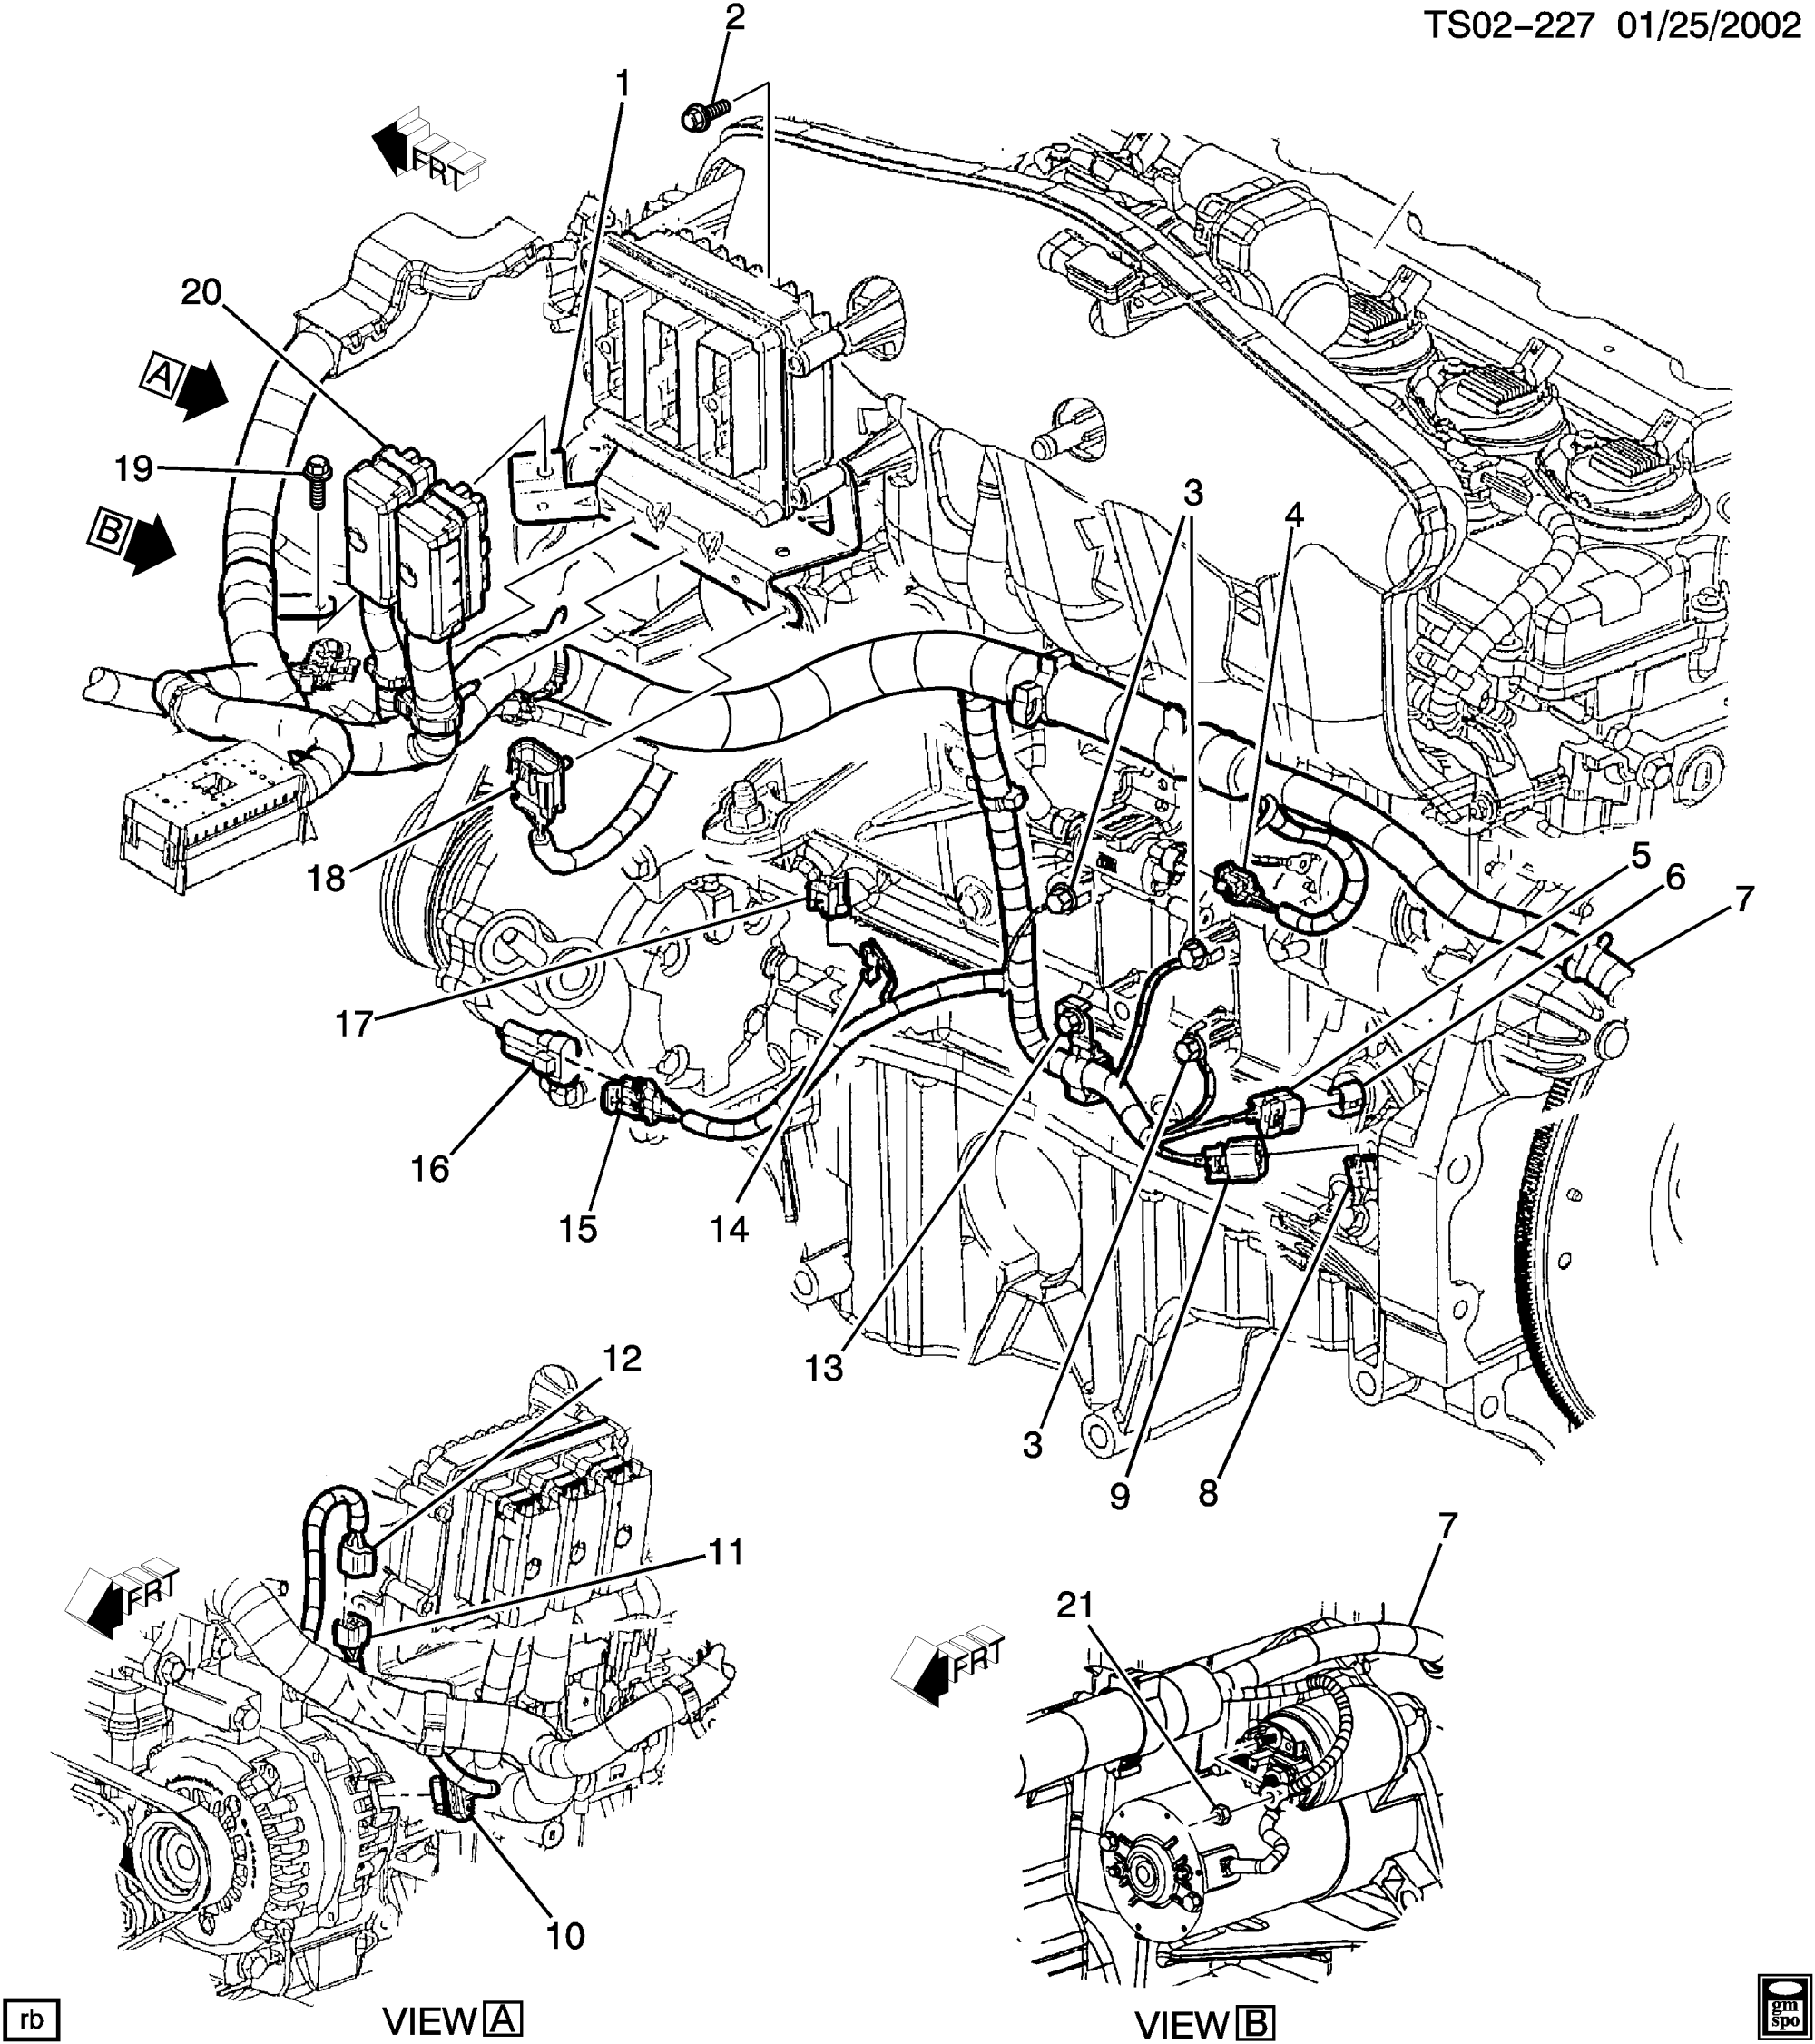 hight resolution of wiring harness engine lh side